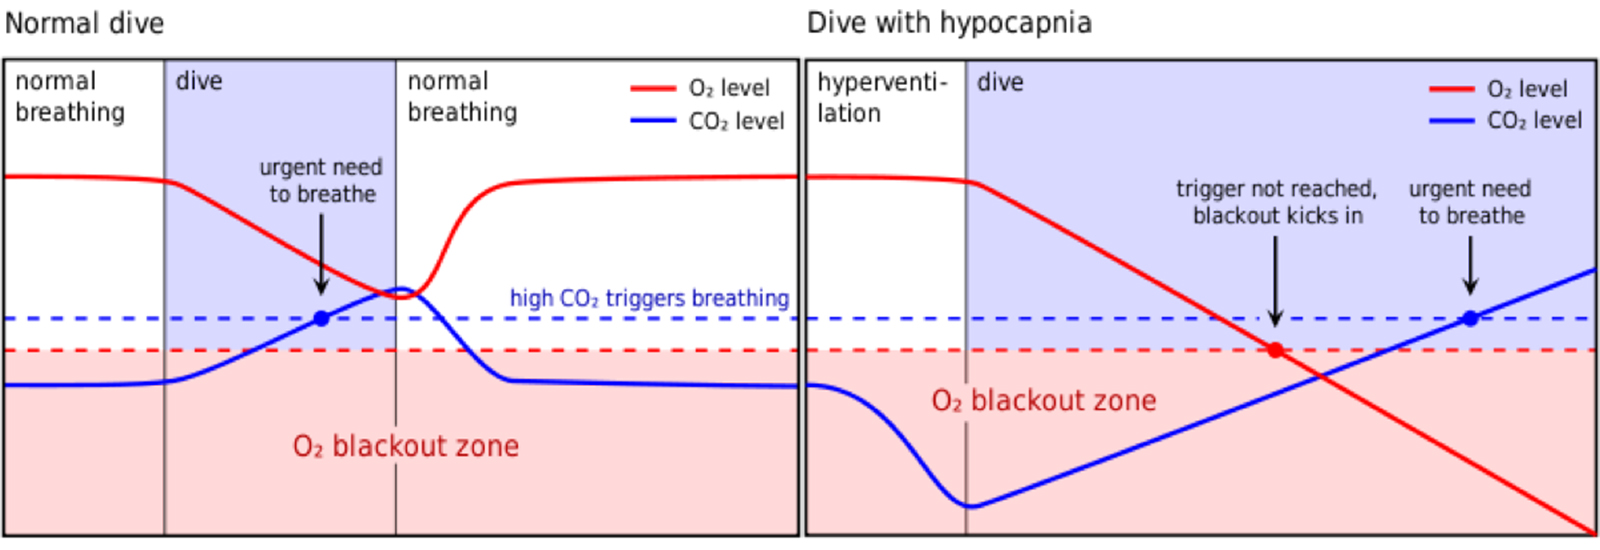 Figure 3: The graph explains why it is so important to avoid hyperventilation before diving, and how it may increase the risk for blackout due to hypoxia. The risk of blackout is increased with hyperventilation before the dive because the urge to breath is delayed due to reduced CO2-levels